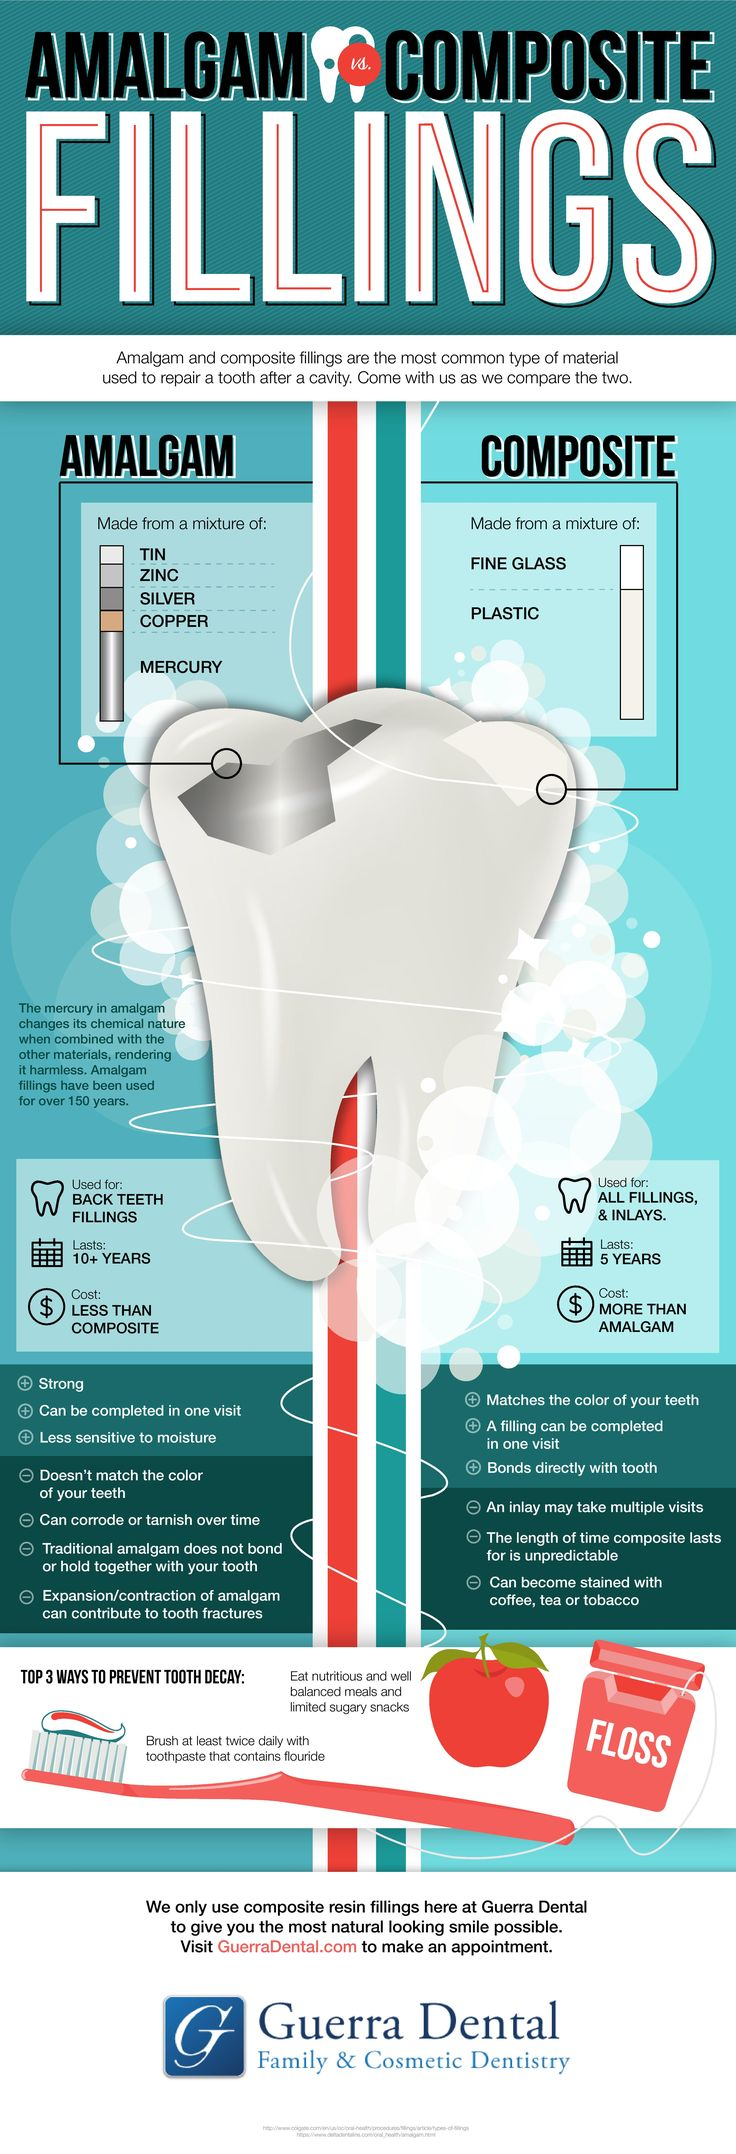 Cavities are common, but preventable with proper health practices. In the event that a cavity needs to be filled.